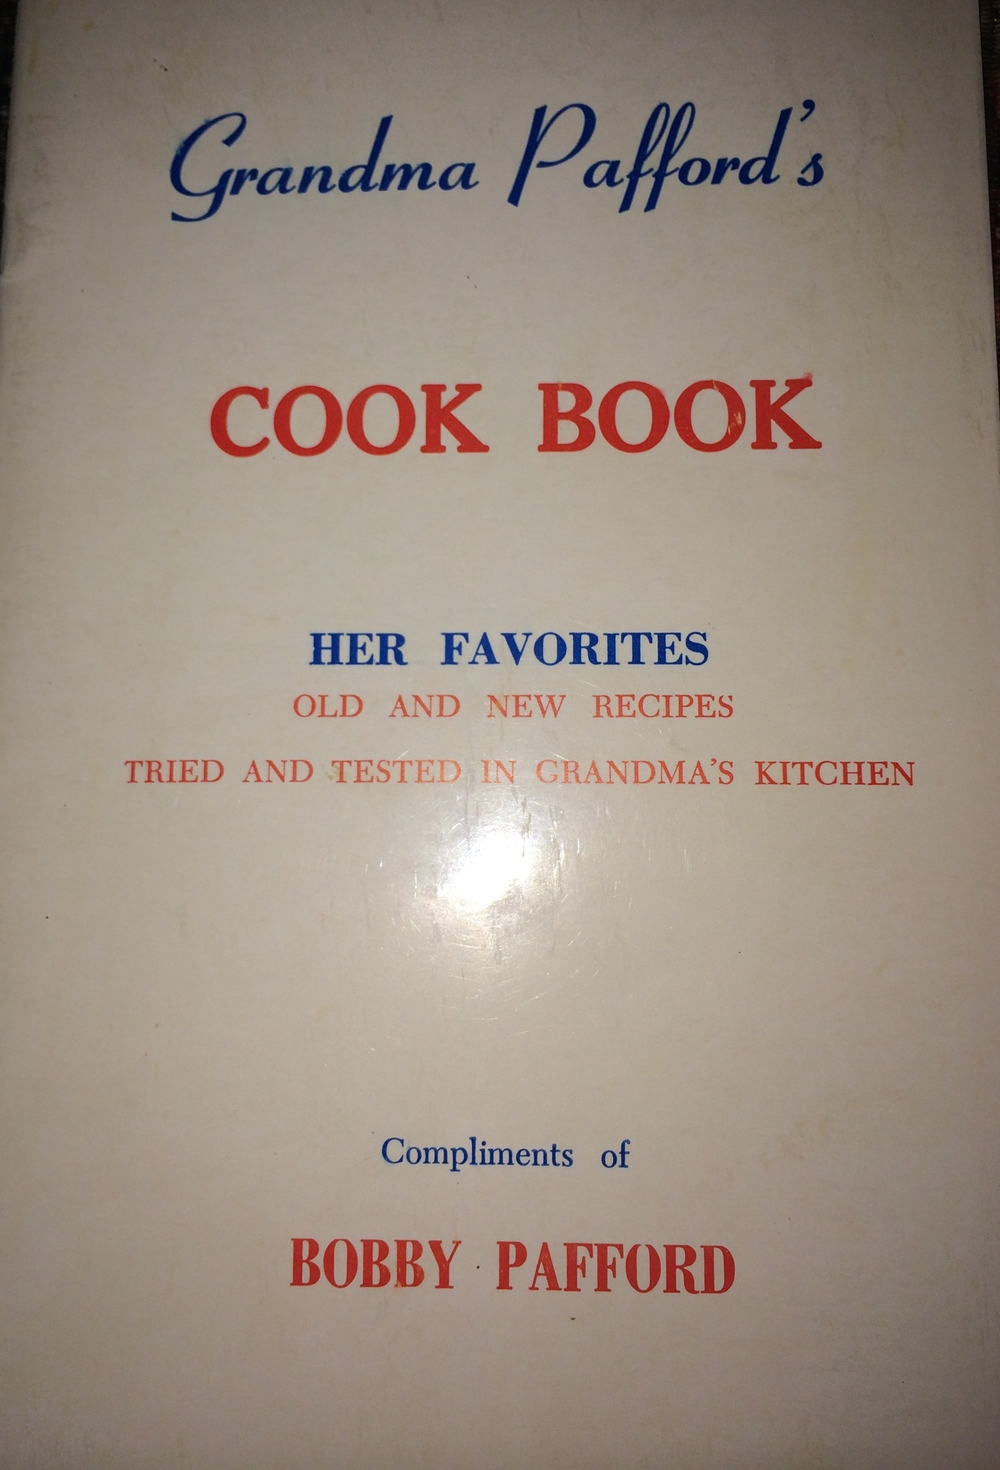 the first community cookbook I was ever aware of from my hometown of Lakeland, Georgia